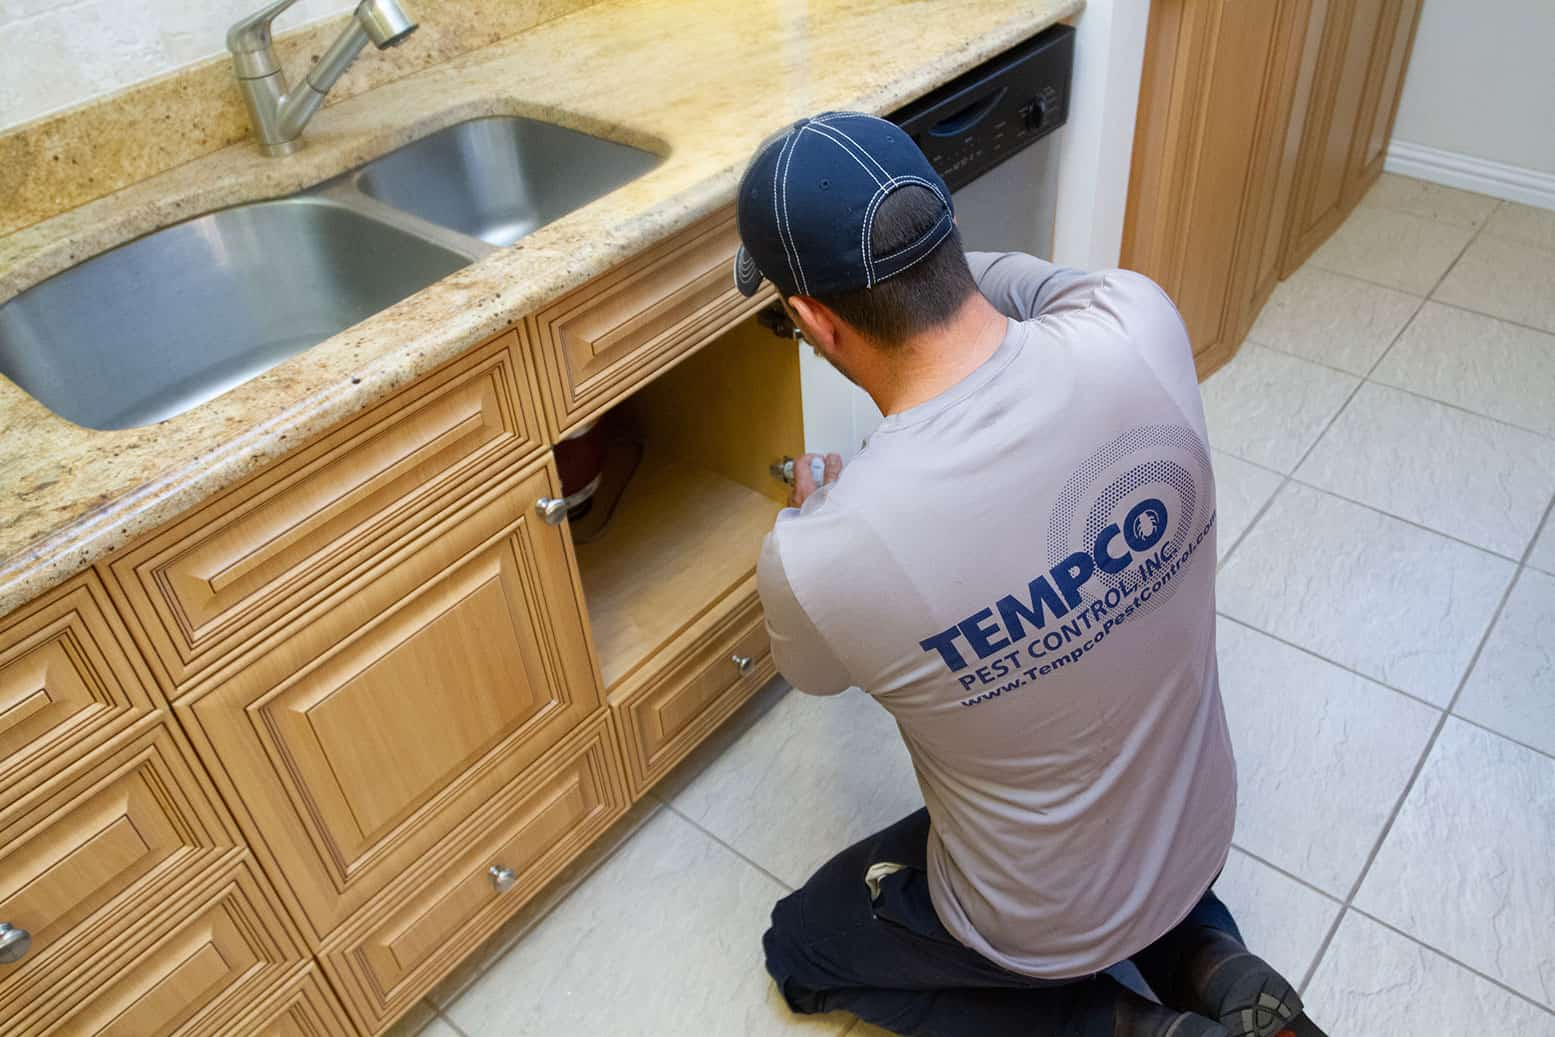 Tempco Tech checking for instects